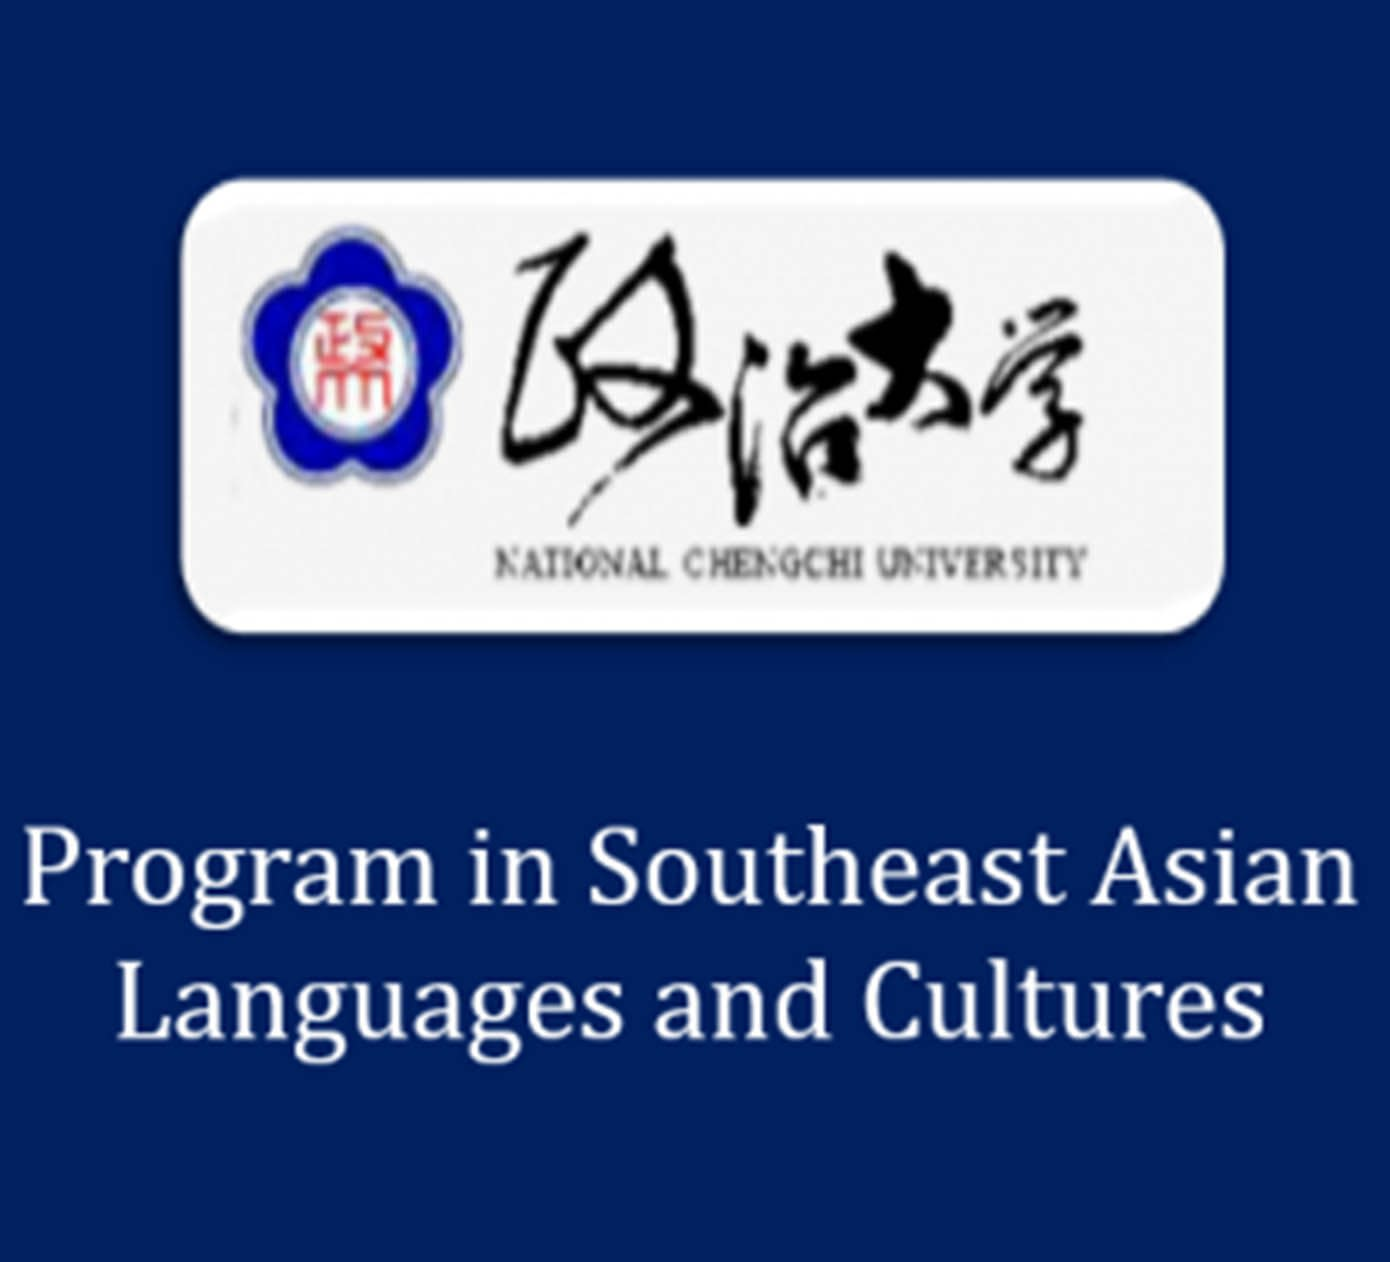 The Program in Southeast Asian Languages and Culture